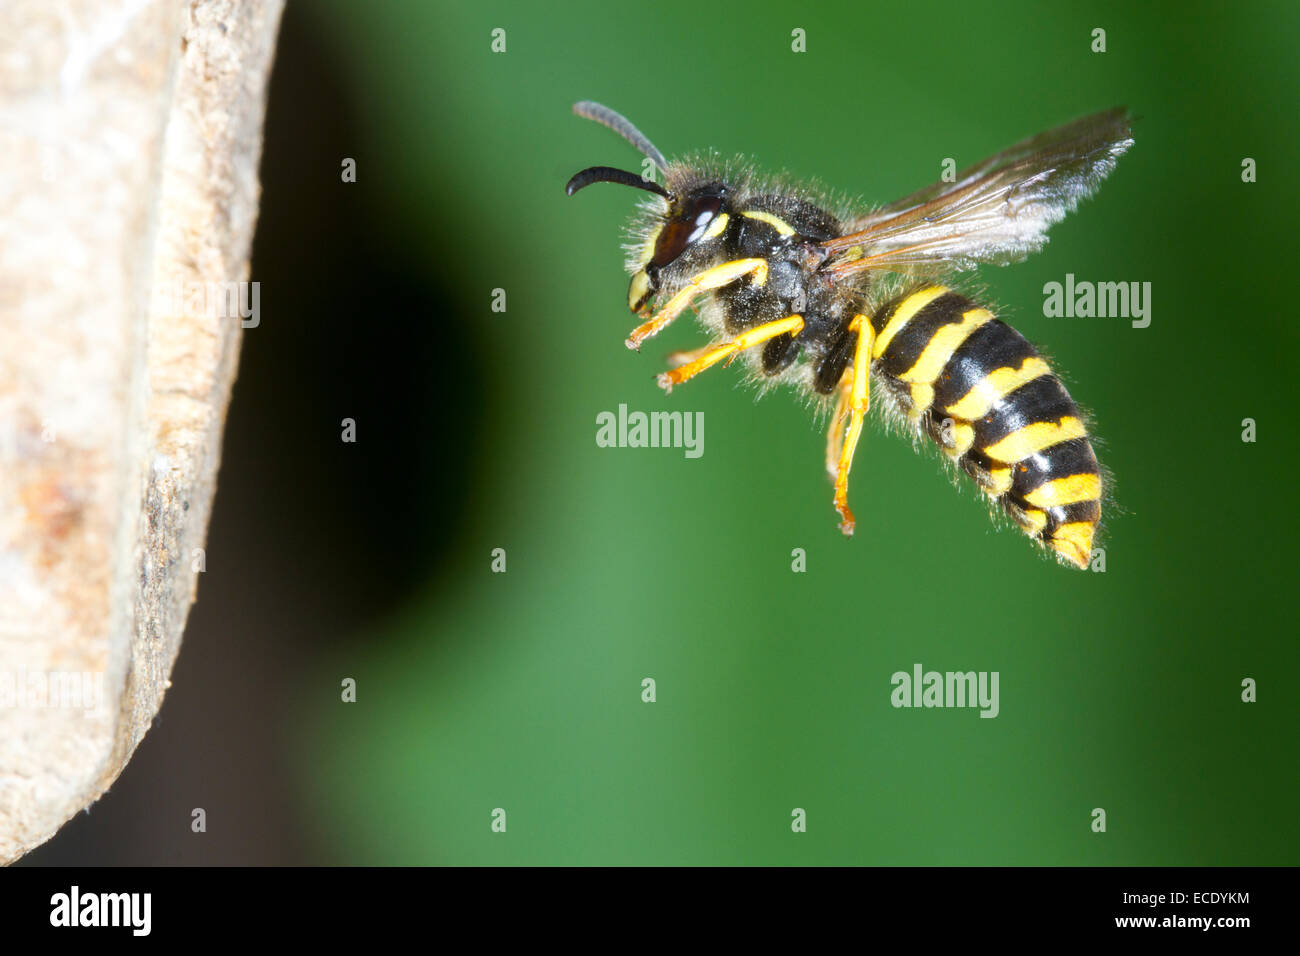 Tree Wasp (Dolichovespula sylvestris) adult worker in flight at the nest entrance. Powys, Wales. July. - Stock Image